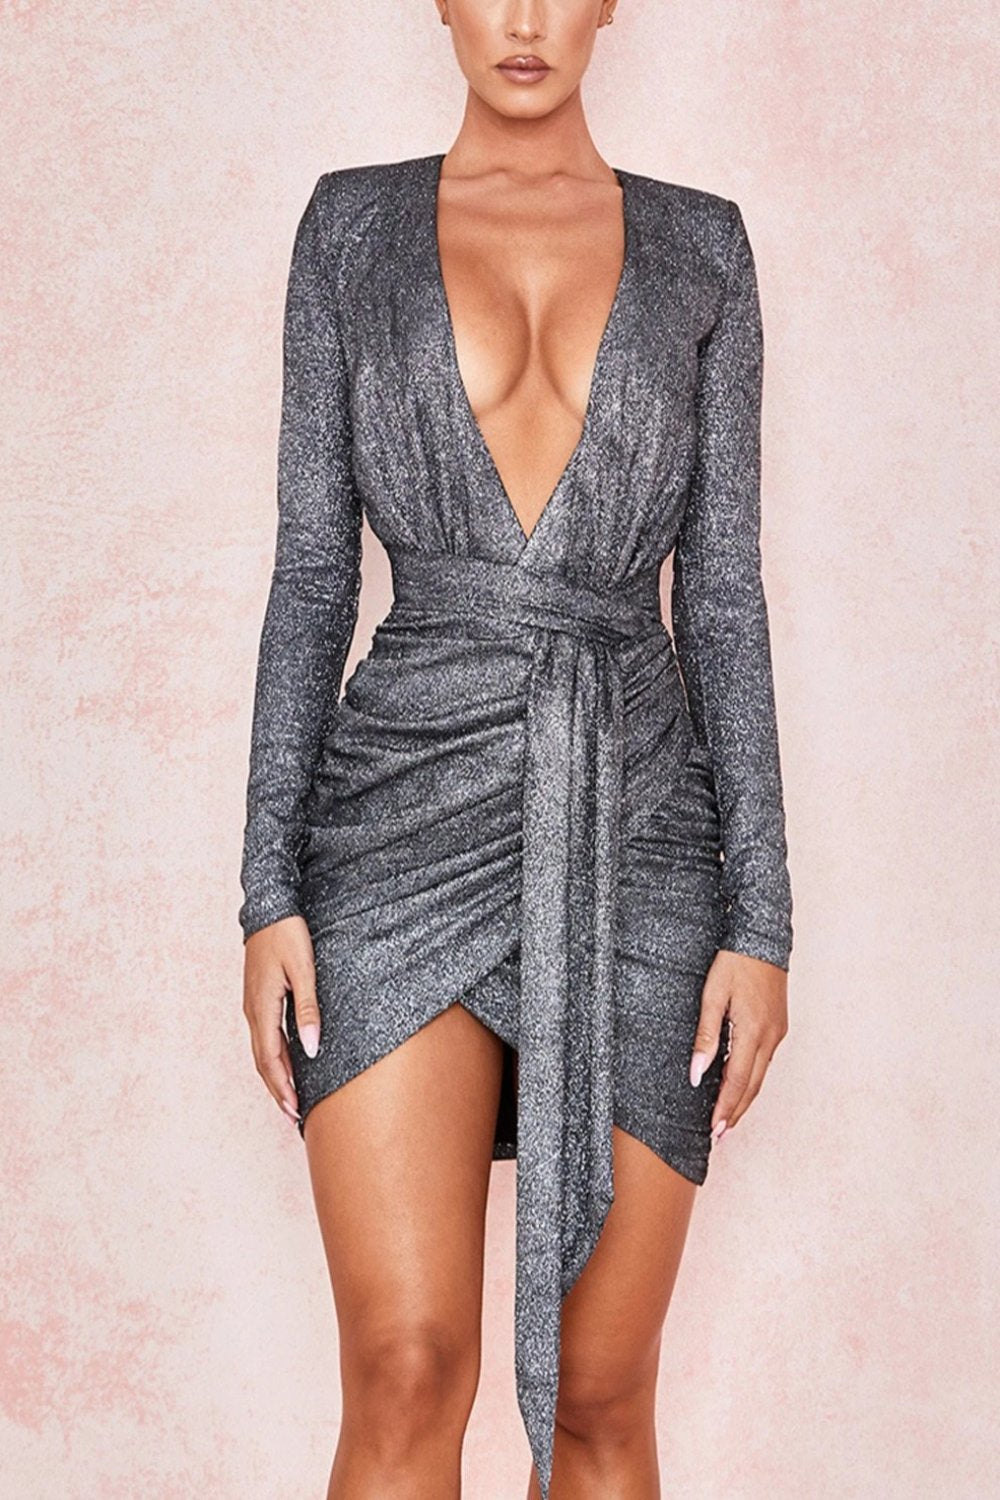 GRAPHITE SPARKLE WRAP DRESS